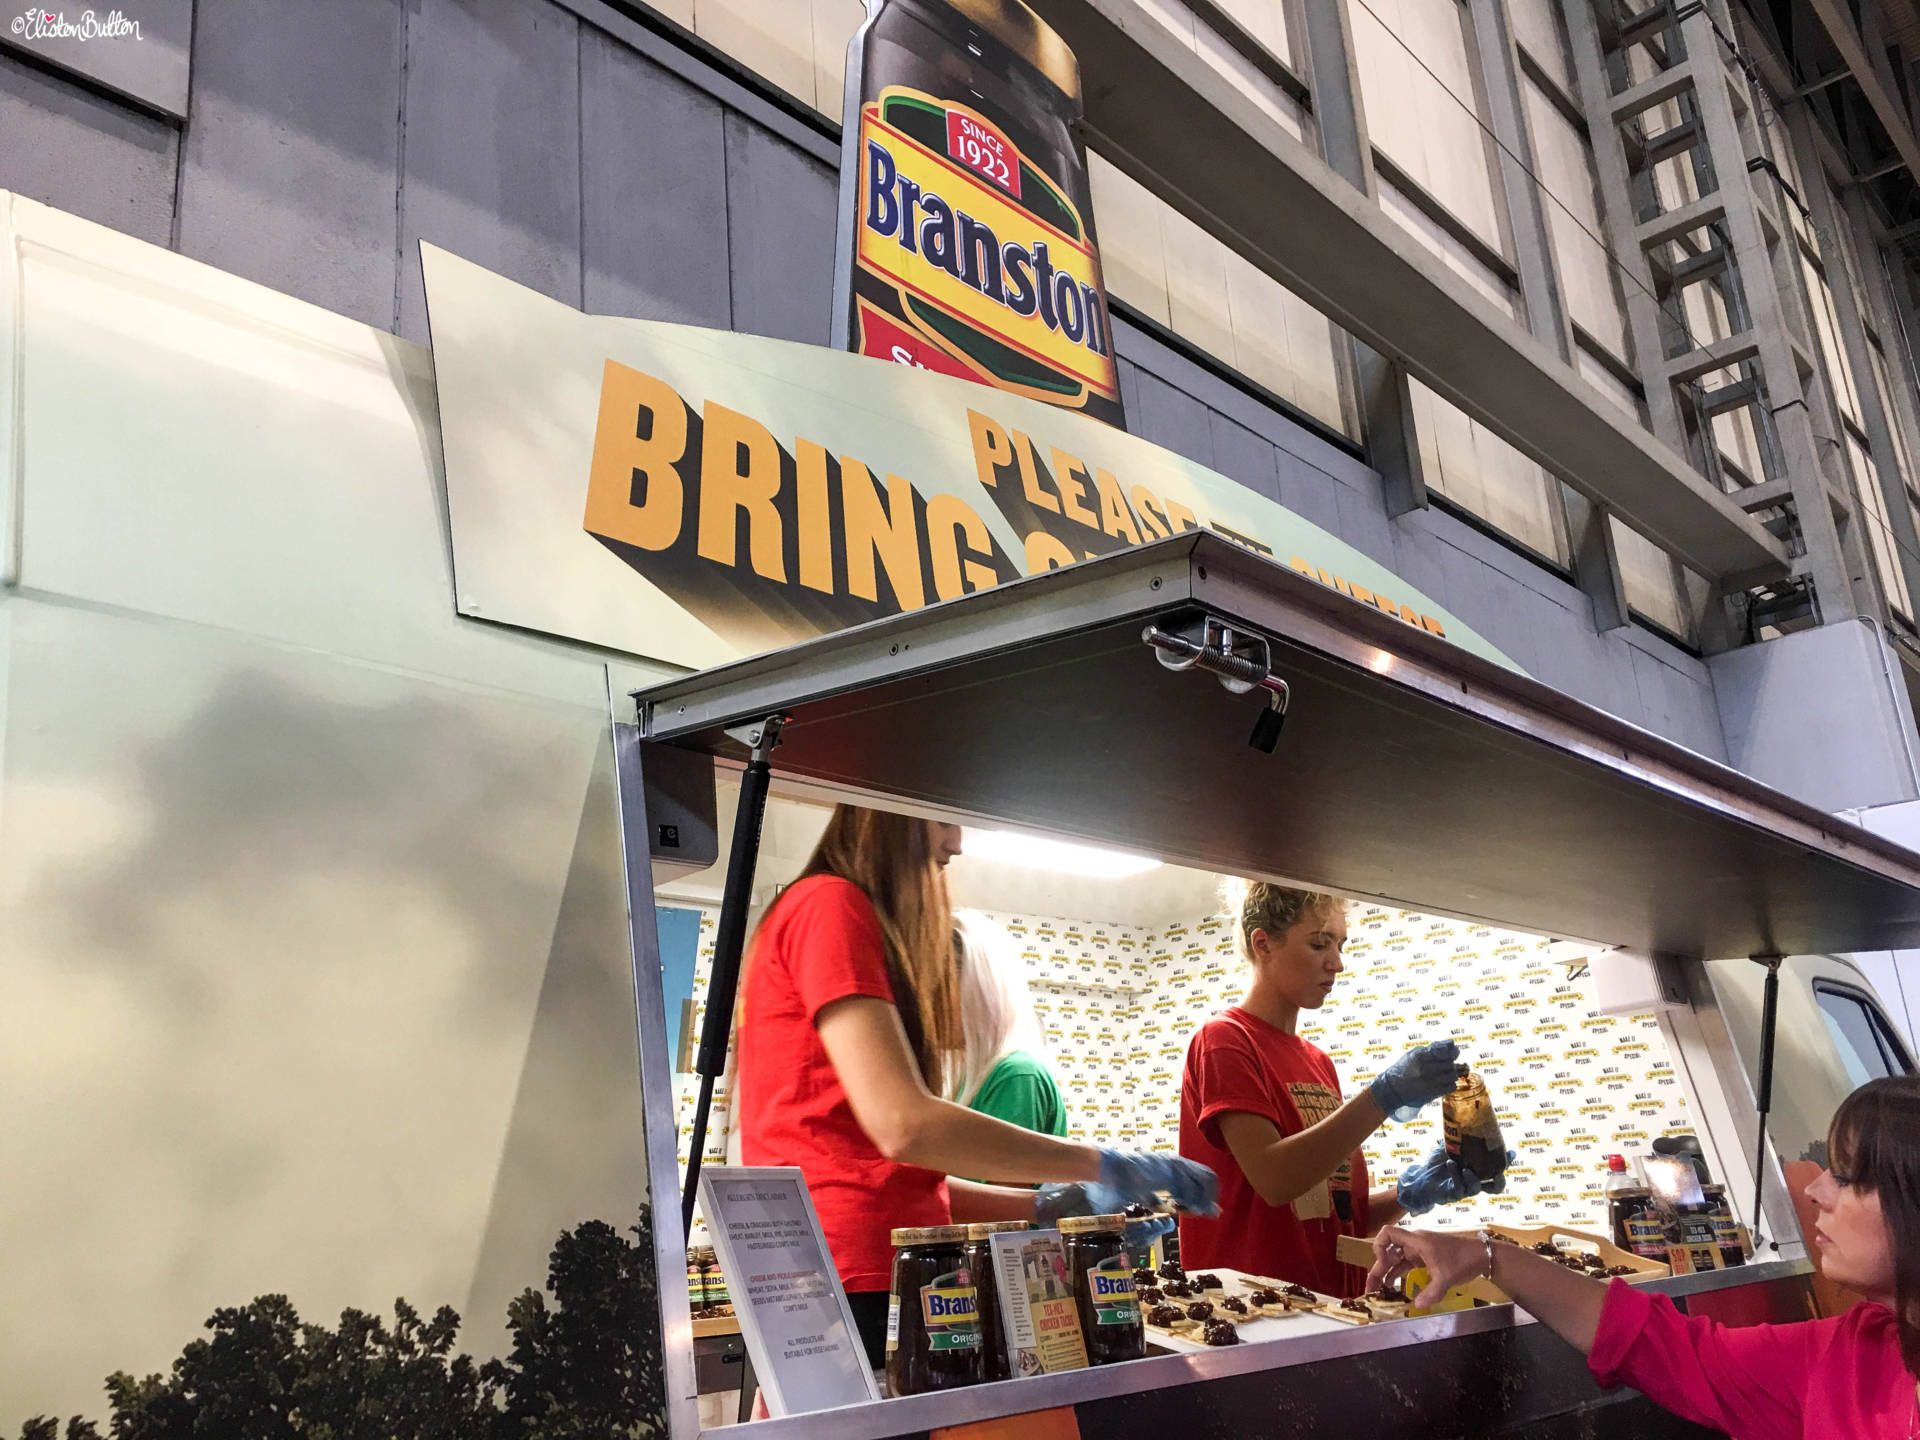 Branston Pickle Van at Grand Designs Live 2017 with Eliston Button - Grand Designs Live 2017 – Part Two at www.elistonbutton.com - Eliston Button - That Crafty Kid – Art, Design, Craft & Adventure.